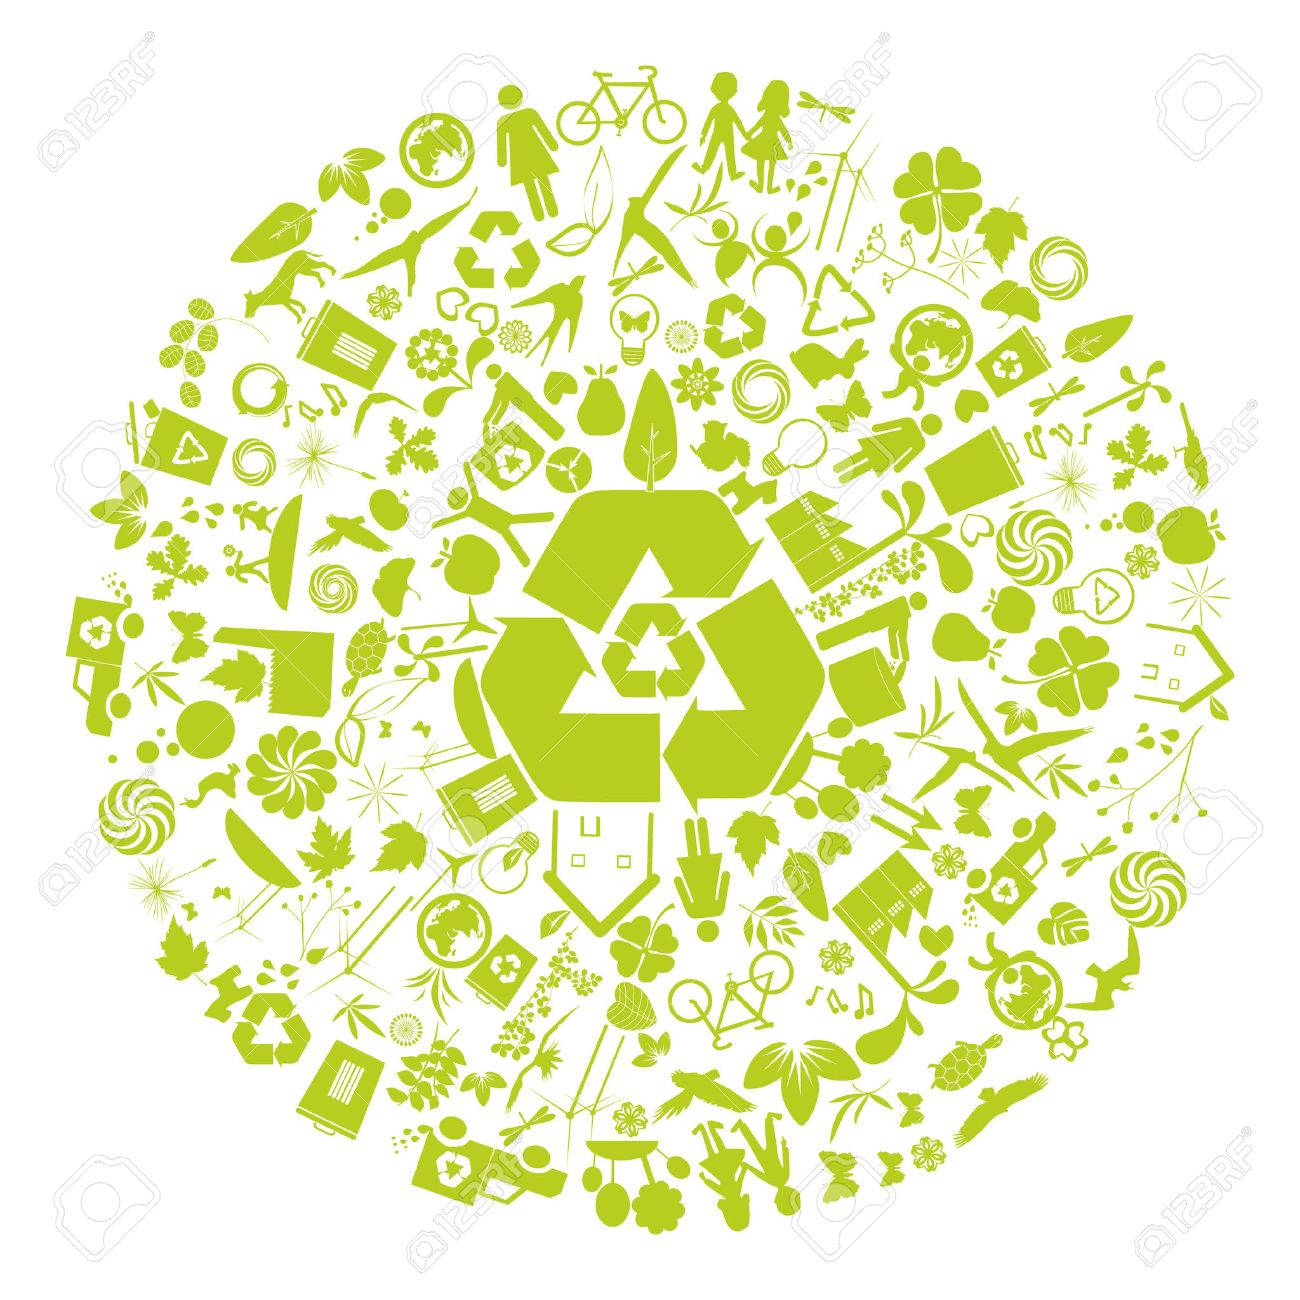 ecology and environment design Stock Vector - 6169012